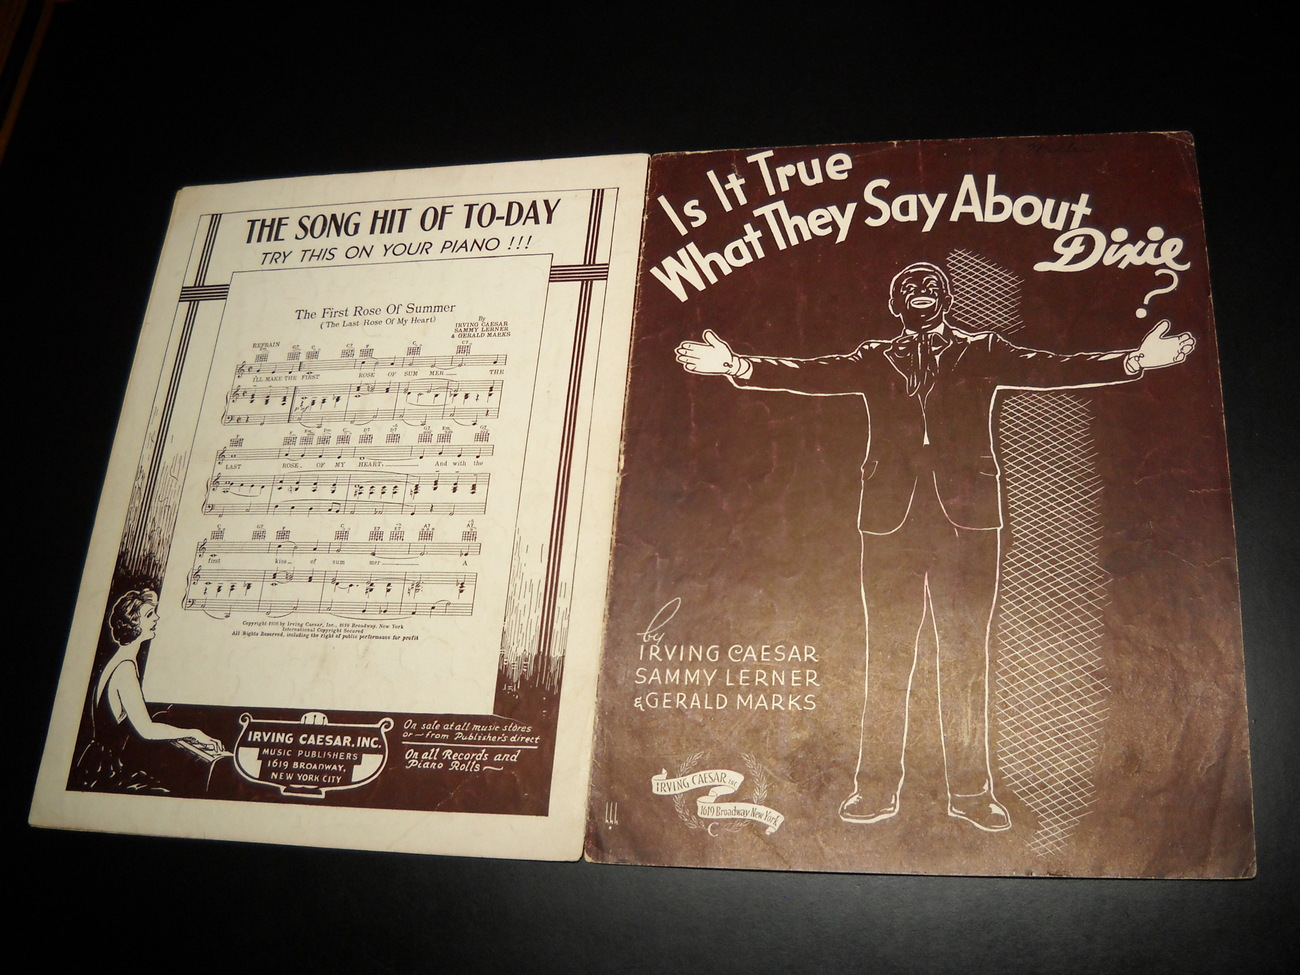 Sheet_music_is_it_true_what_they_say_about_dixie_irving_caesar_sammy_lerner_gerald_marks_1936_irving_caesar_04